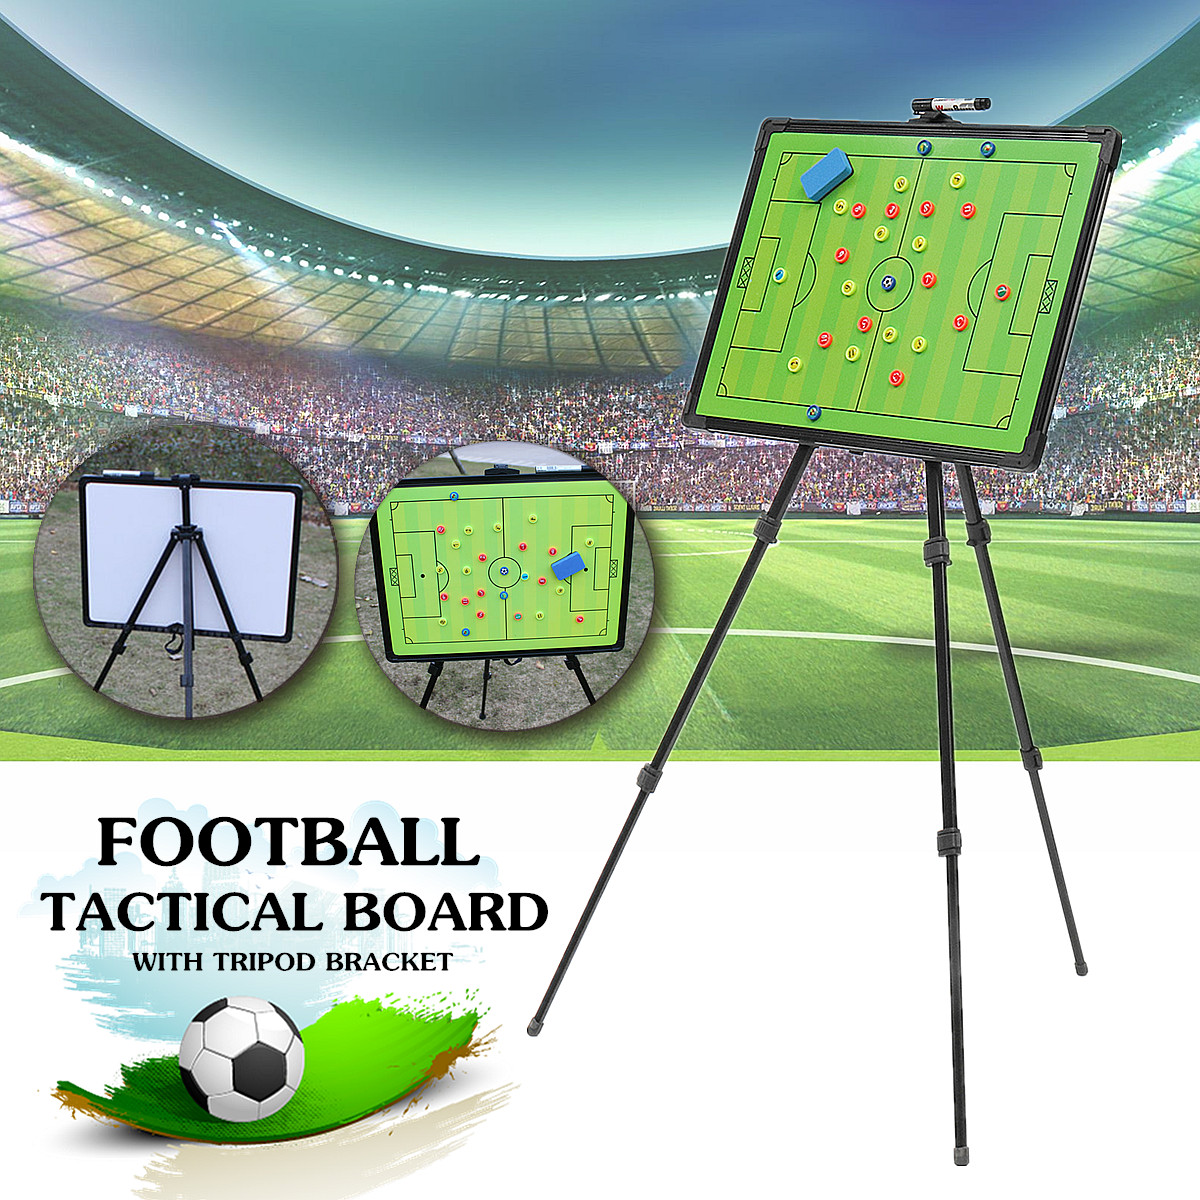 Professional Football Tactical Coaching Board Training Guidance Magnetic w/ Tripod Stainless Steel+PVC Board 60x45cm Portable greg bach coaching football for dummies